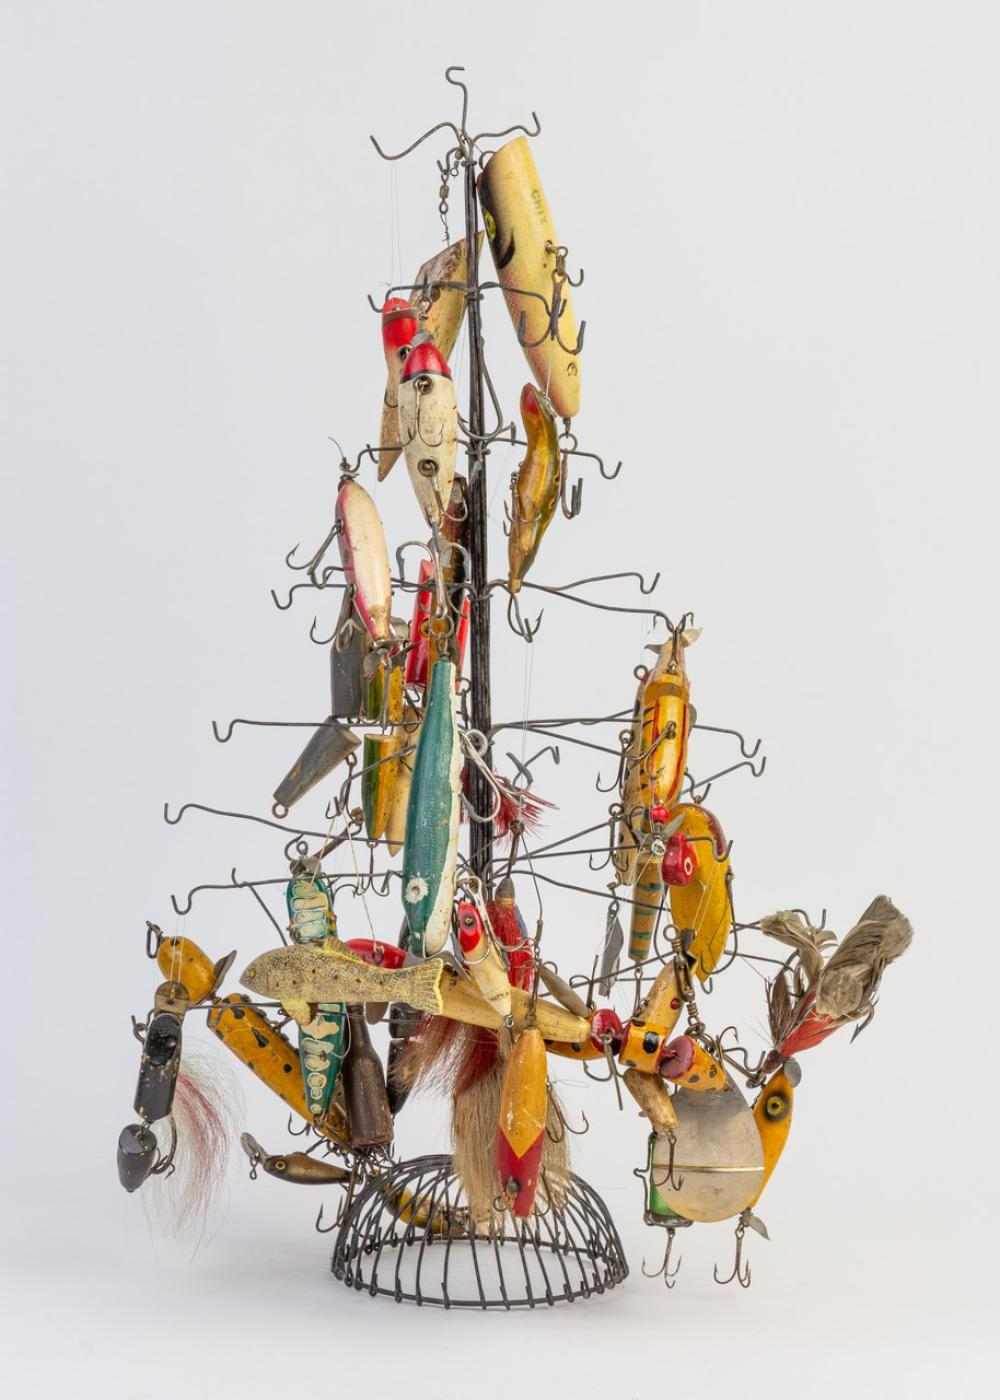 A vintage fishing lure stand together with a collection of lures.